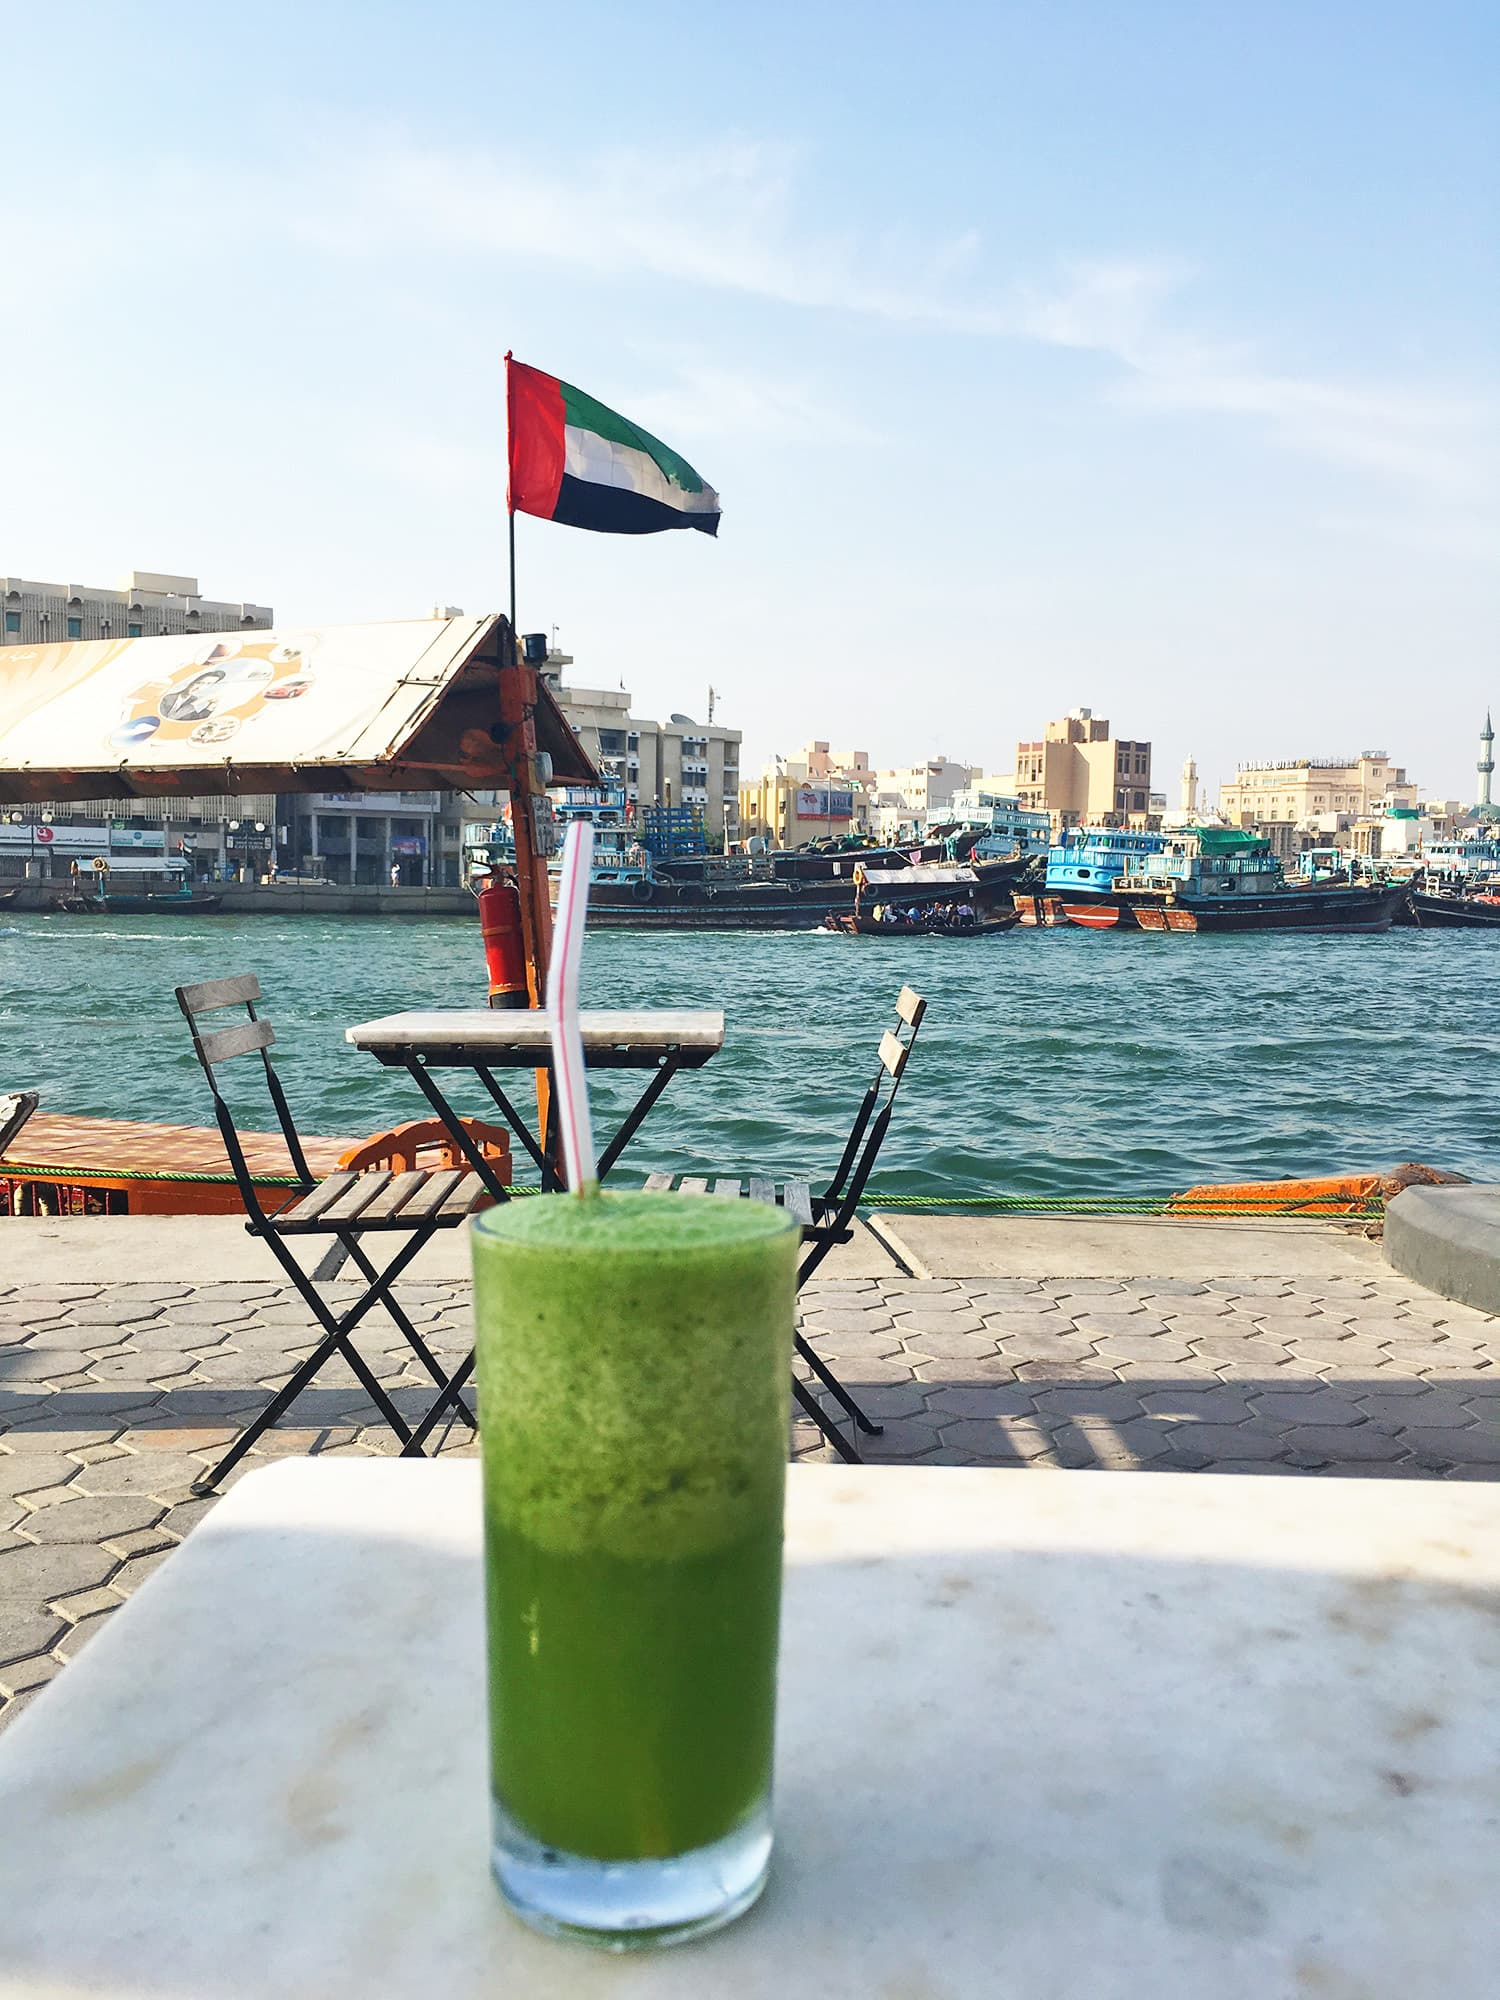 The lemon and mint juice was very refreshing.